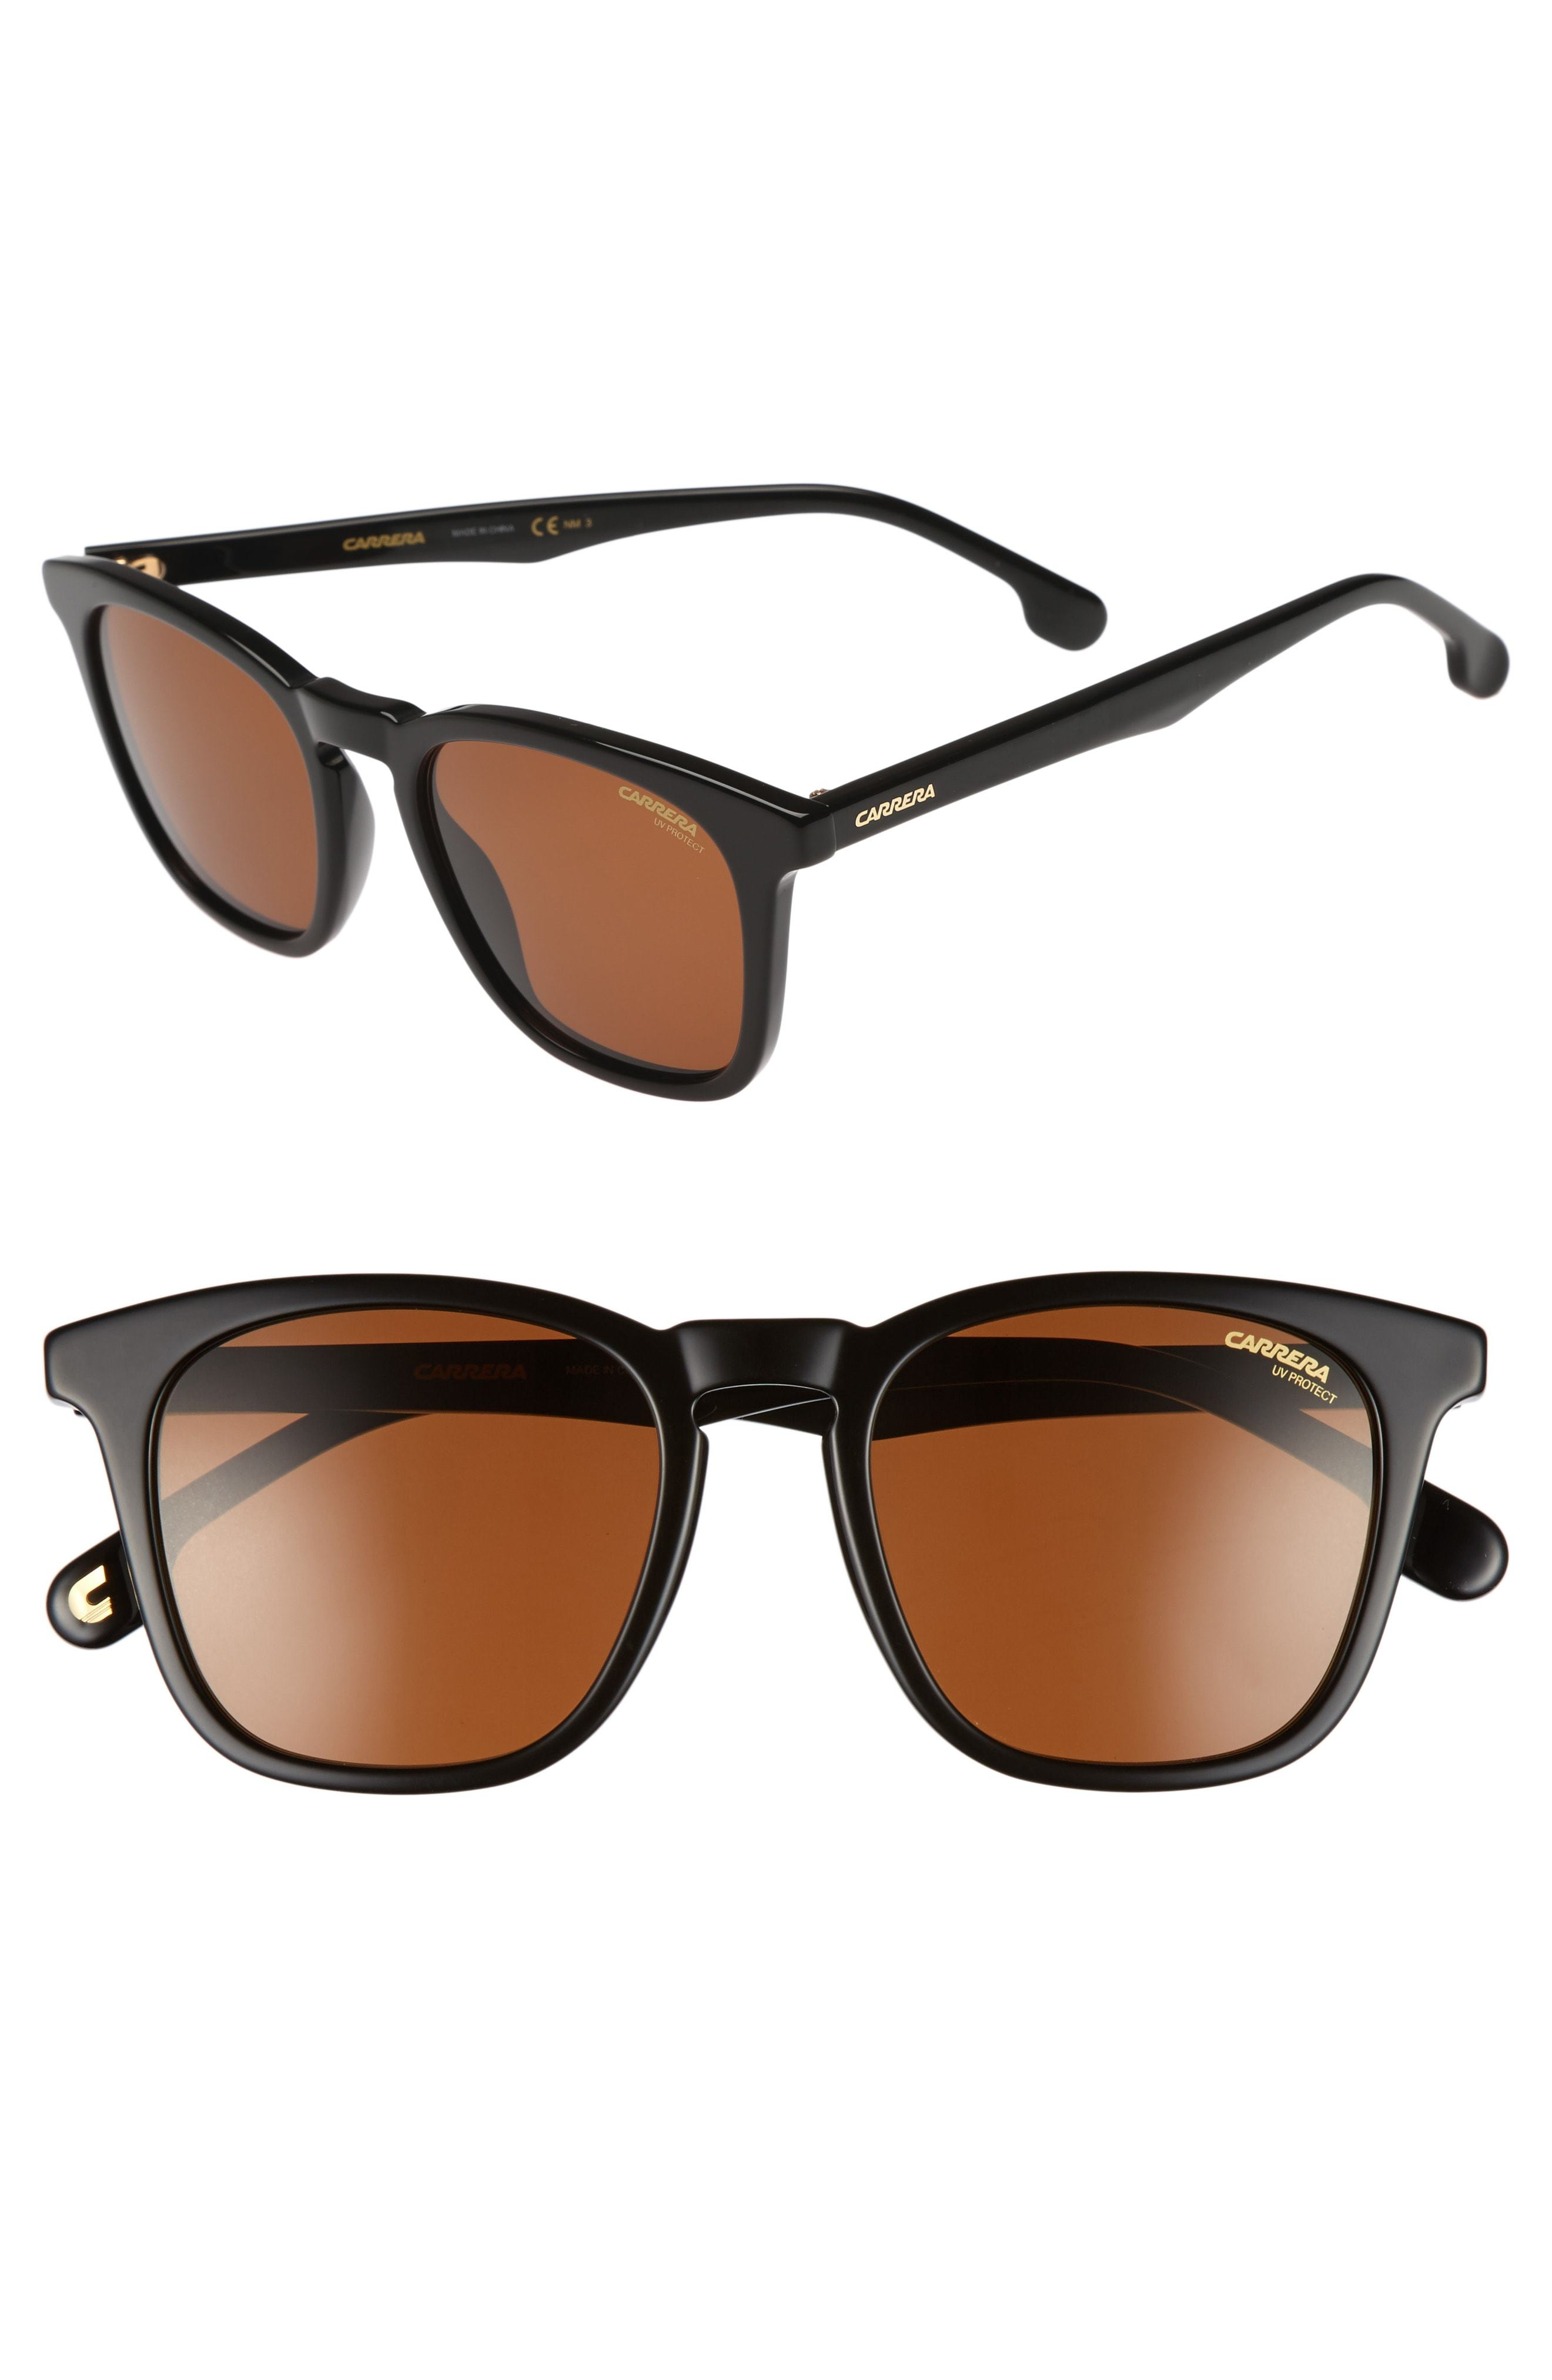 Carrera Eyewear Carrera 143s 51mm Sunglasses